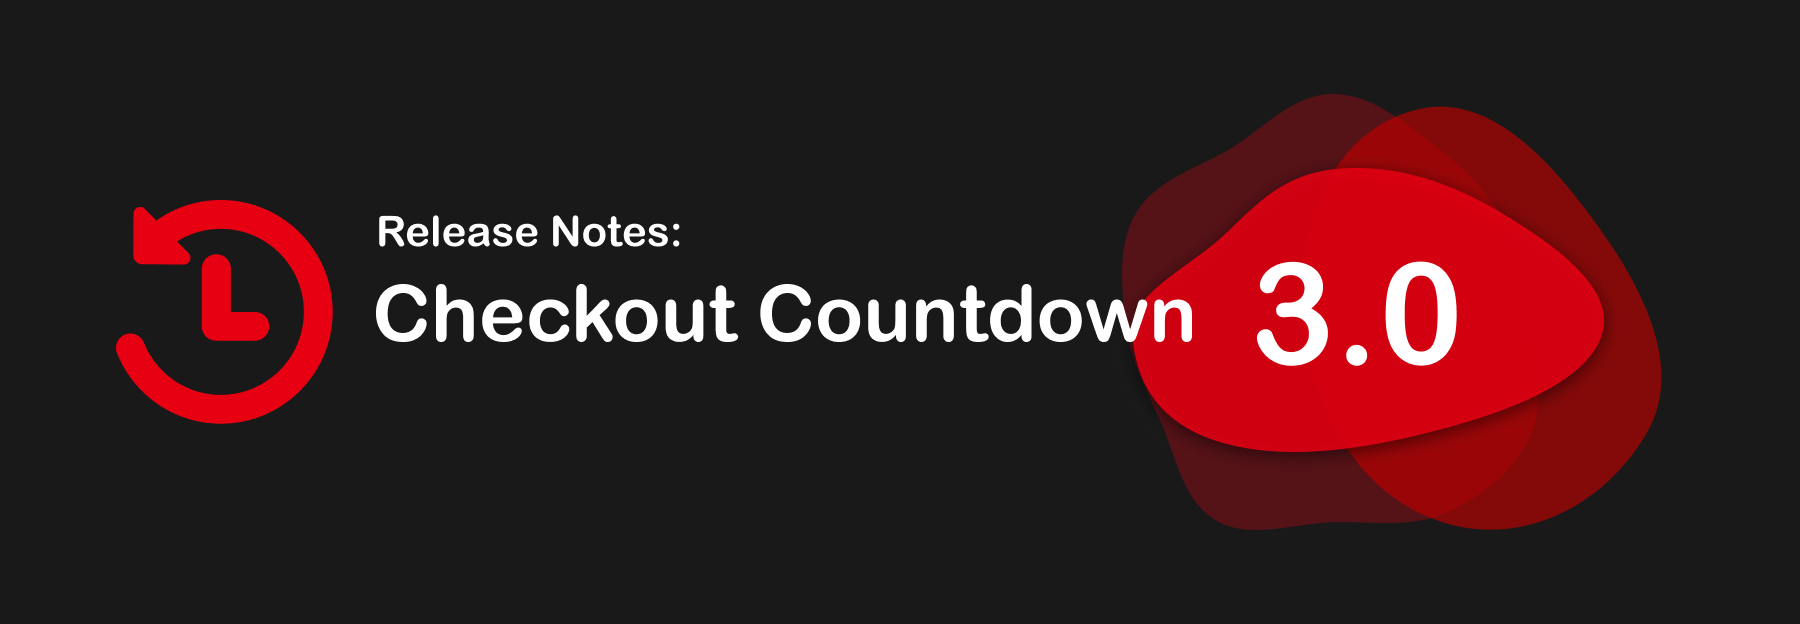 Checkout Countdown important release notes